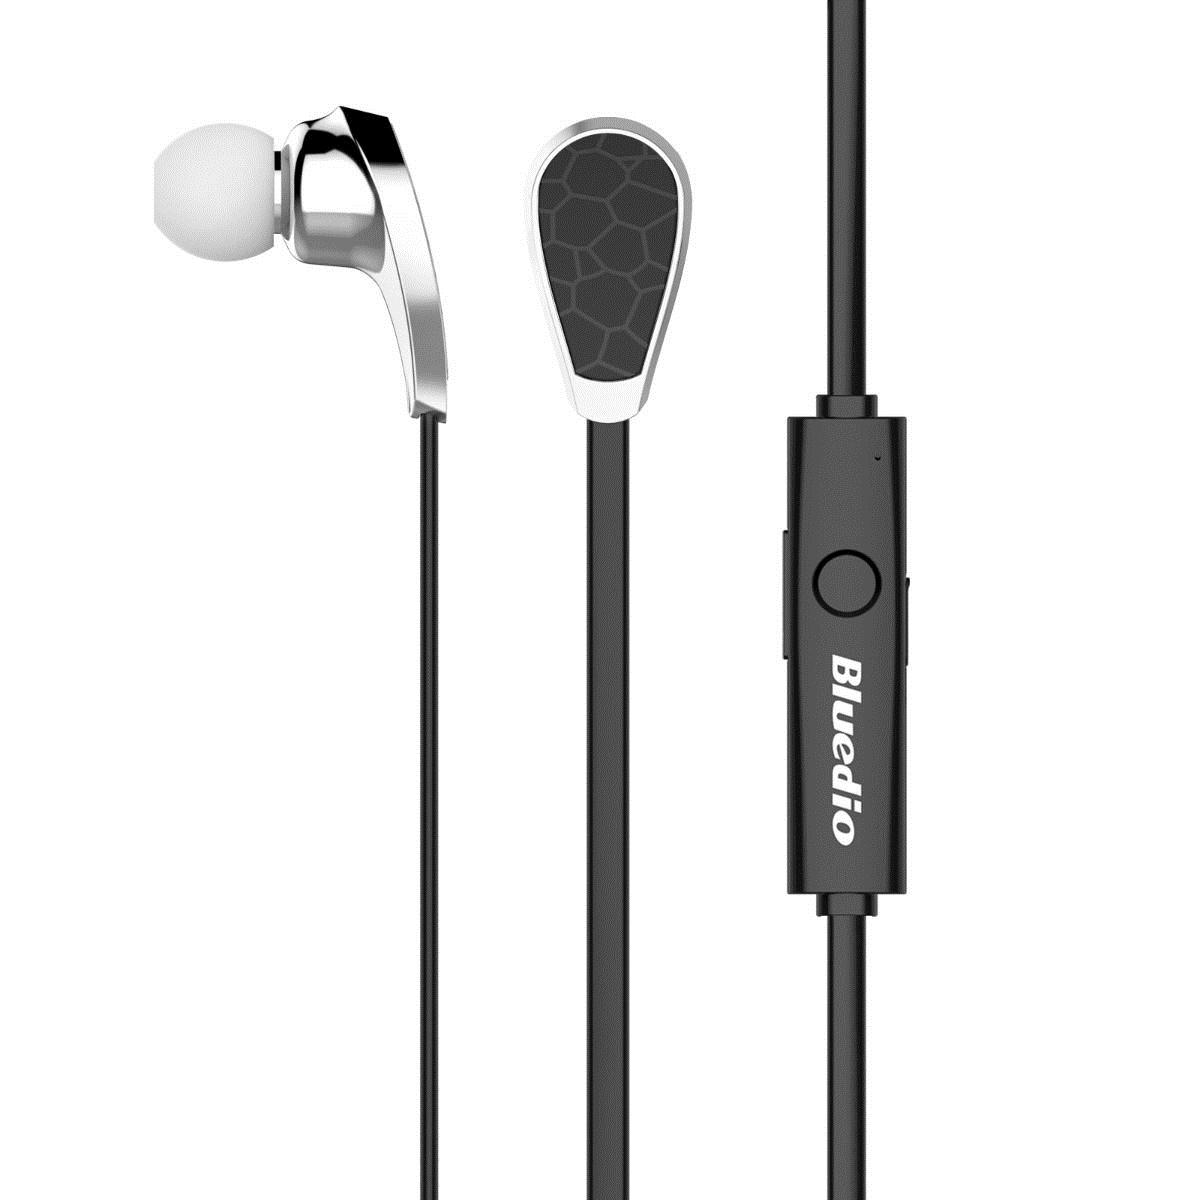 wireless original stereo bass earphone with mic support bluetooth 4 1 handsfree sport earbuds. Black Bedroom Furniture Sets. Home Design Ideas